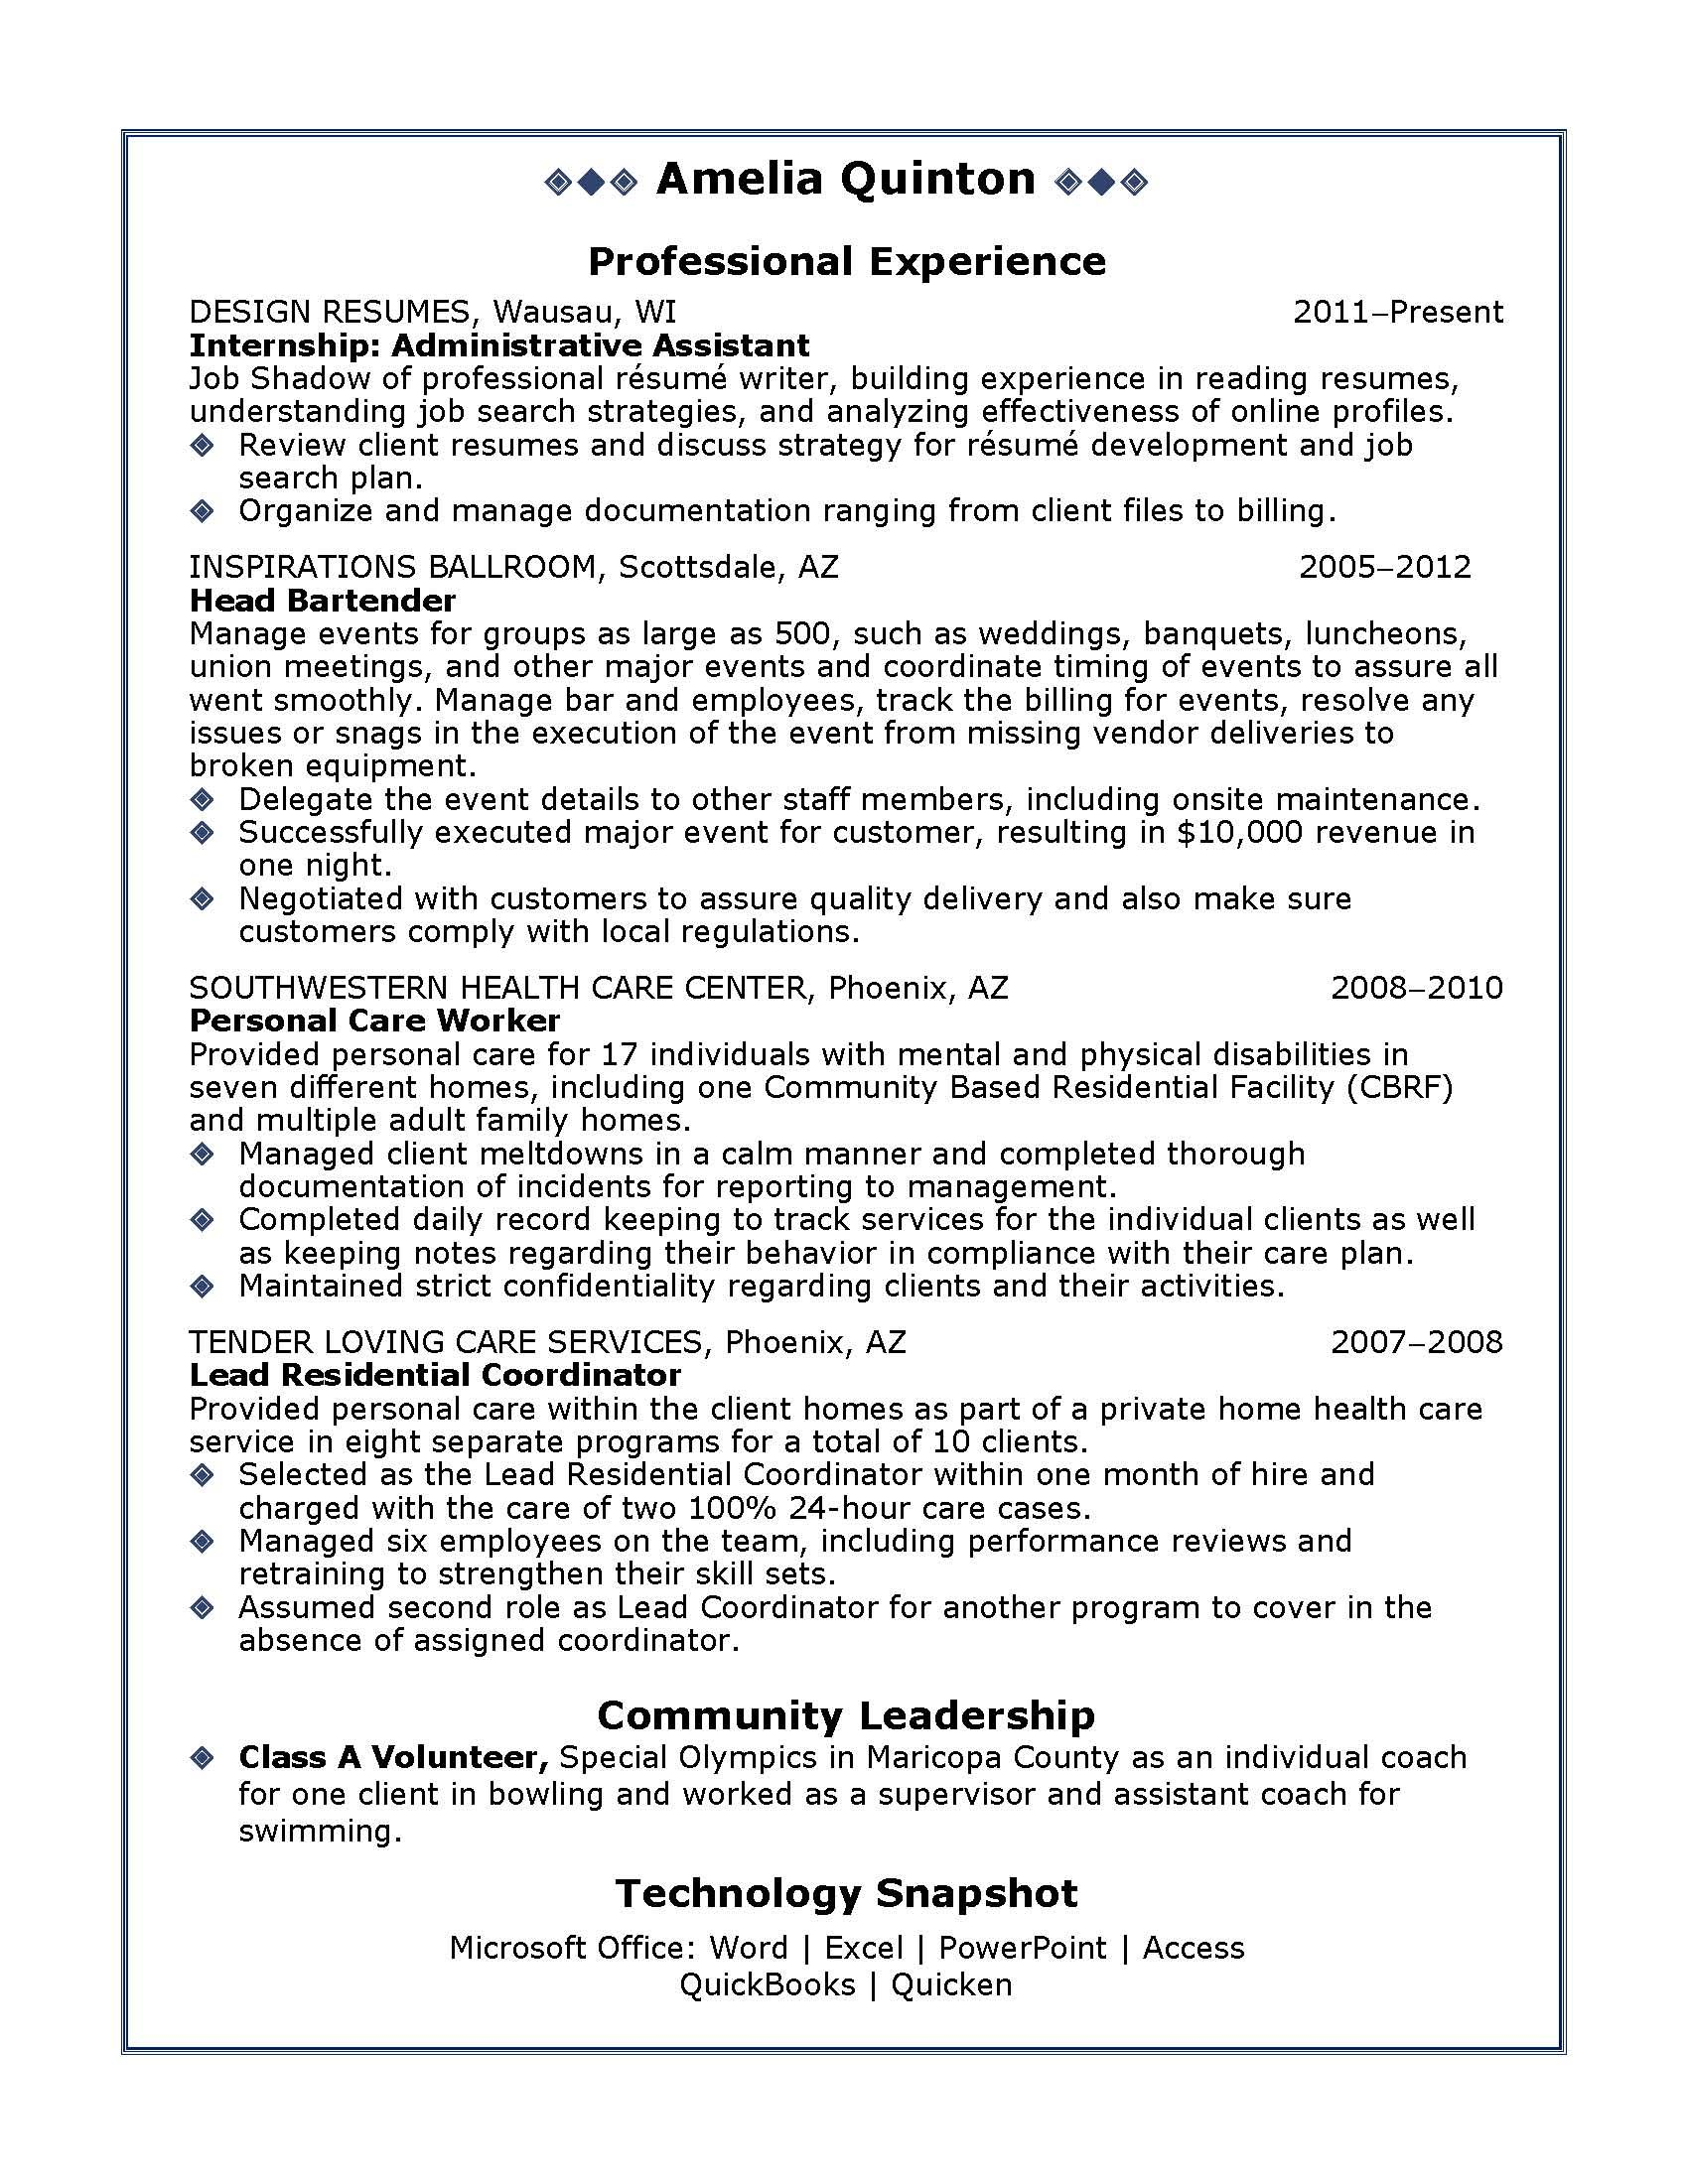 Executive Format Resume Template Triage Nurse Resume Sample  Httpwwwresumecareertriage